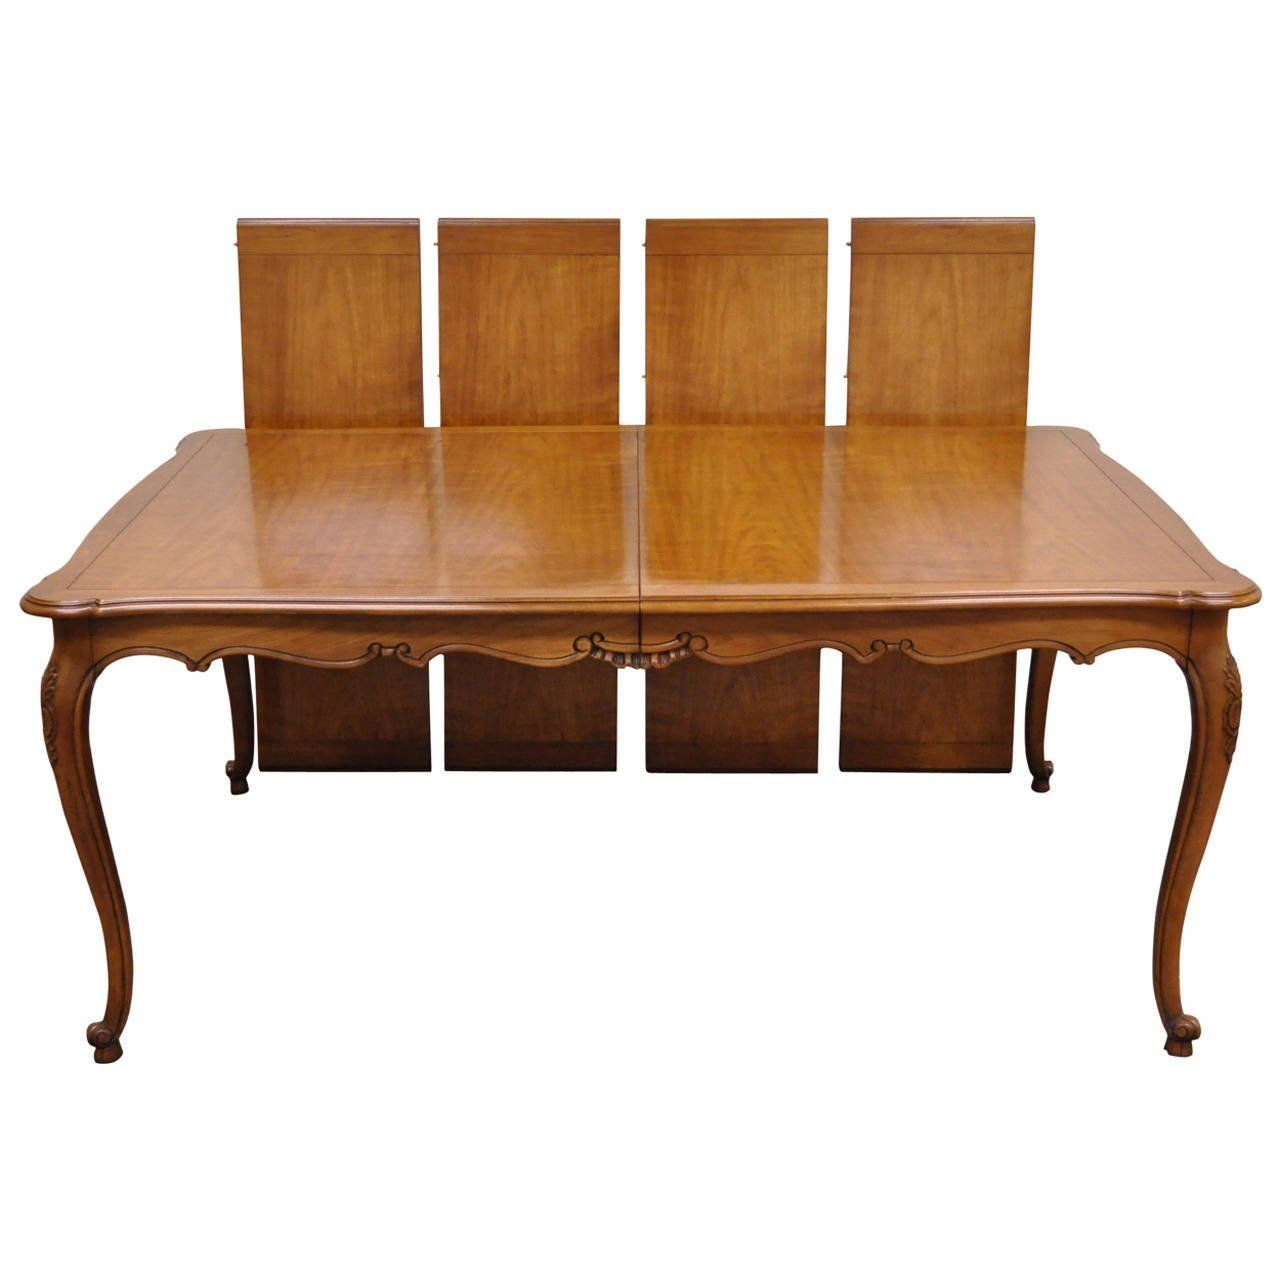 Kindel Borghese French Country Or Louis XV Style Dining Table With Four Leaves